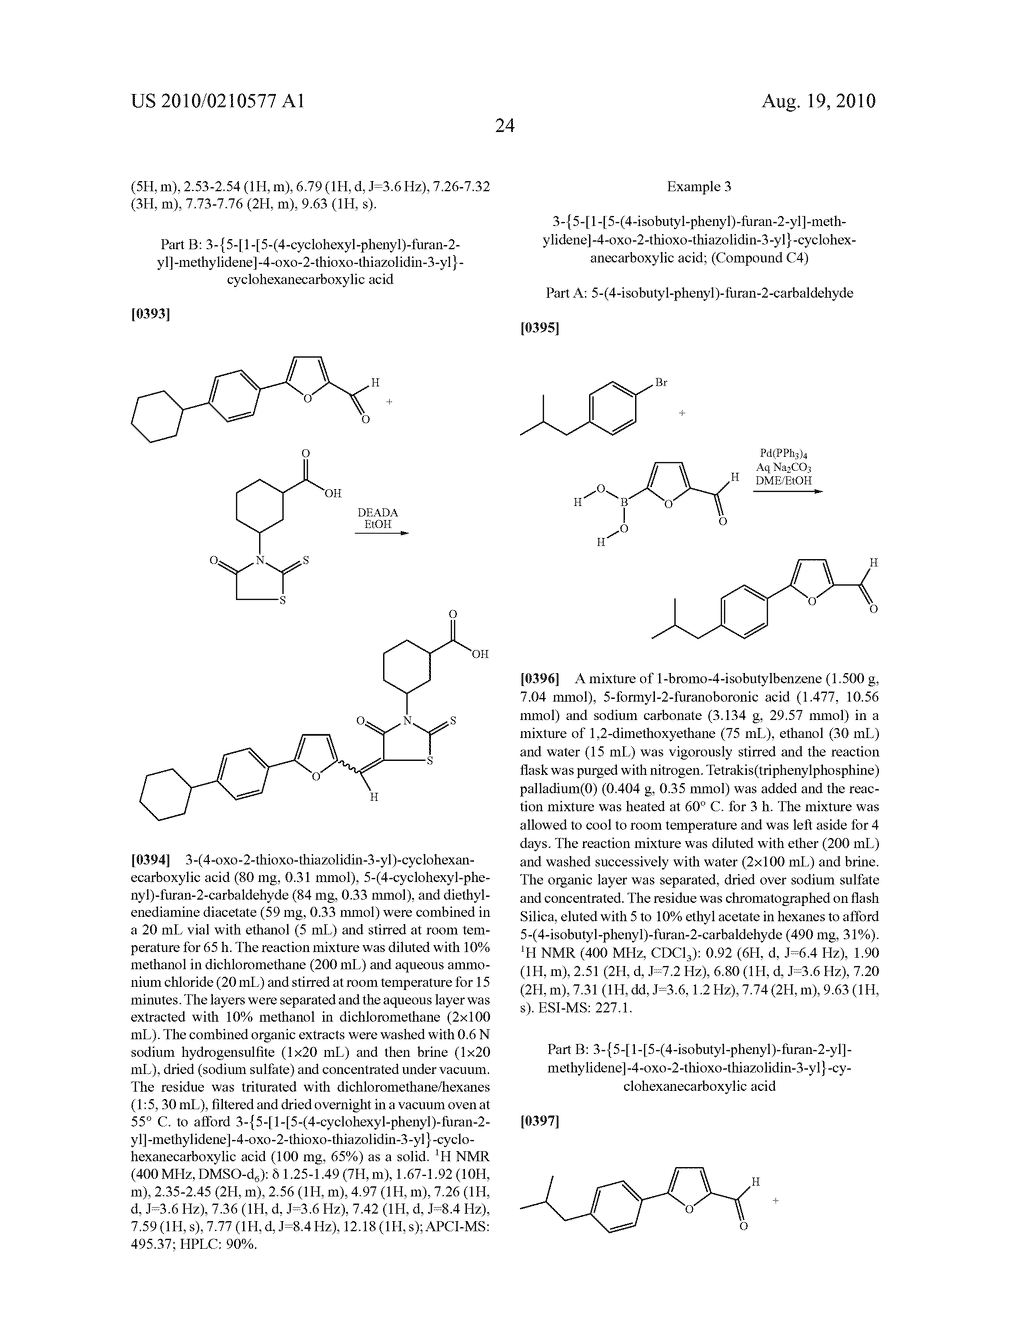 CYCLIC CARBOXYLIC ACID RHODANINE DERIVATIVES FOR THE TREATMENT AND PREVENTION OF TUBERCULOSIS - diagram, schematic, and image 34